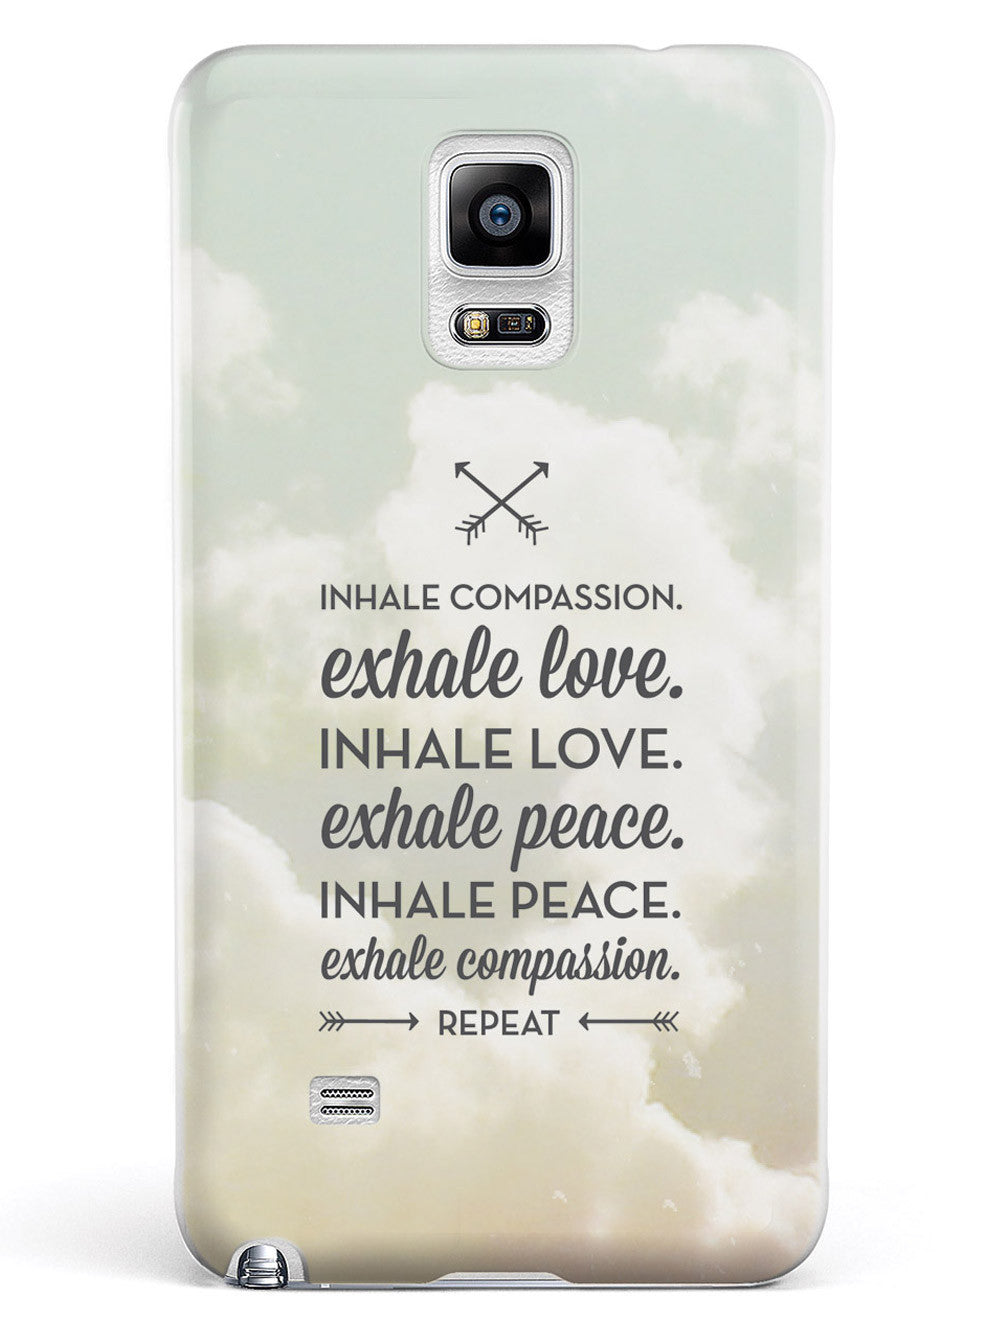 Inhale Compassion, Exhale Love inspirational quote Case